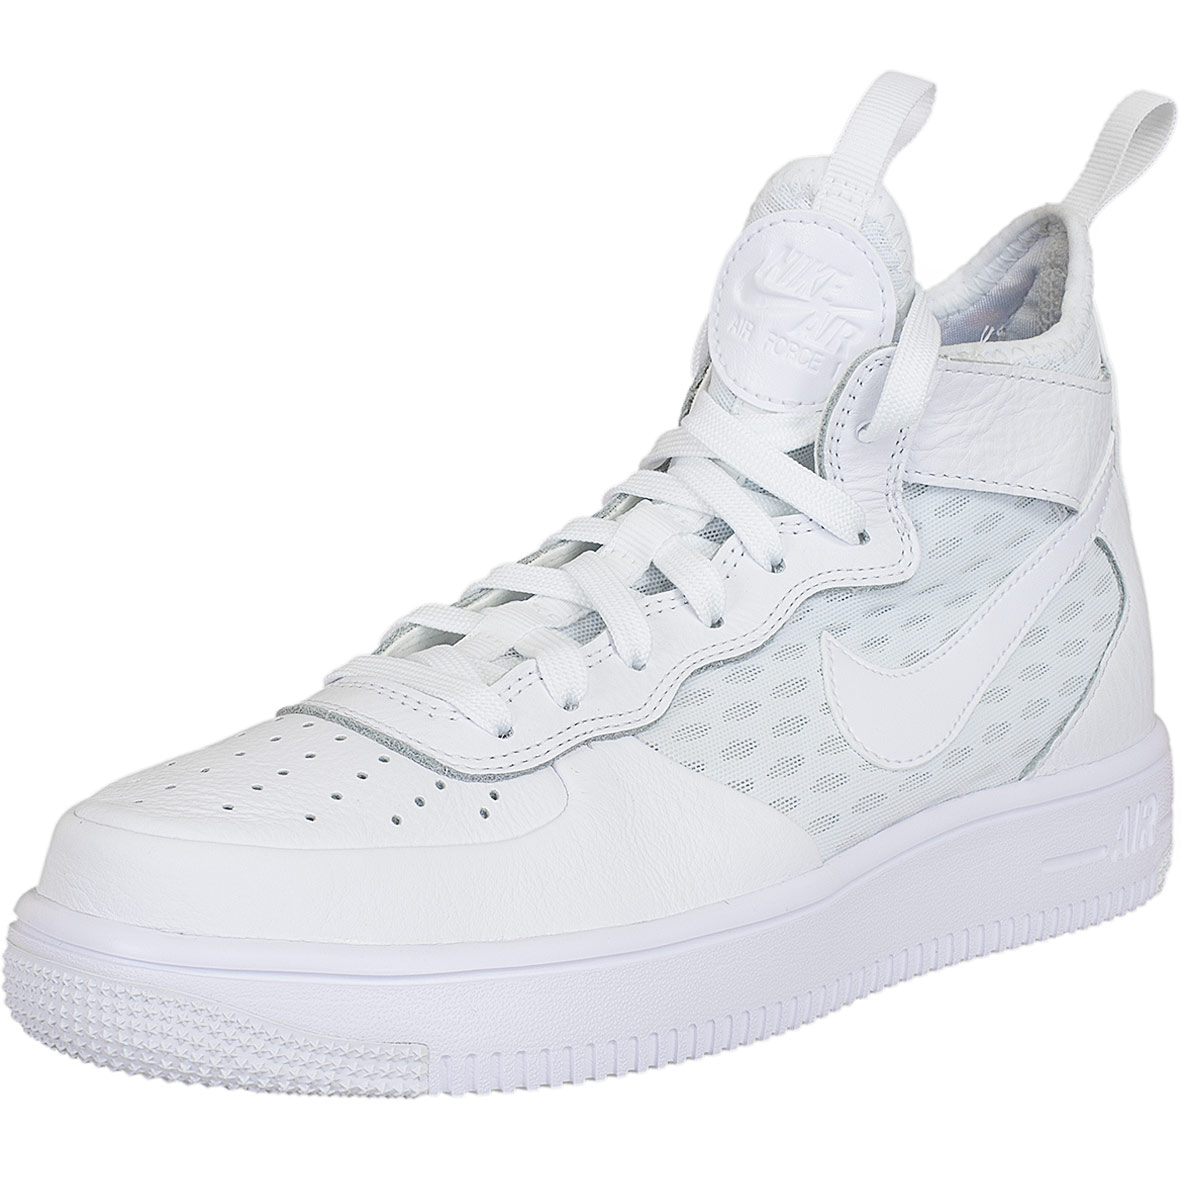 brand new look out for sale online ☆ Nike Damen Sneaker Air Force 1 Ultraforce Mid weiß/weiß ...